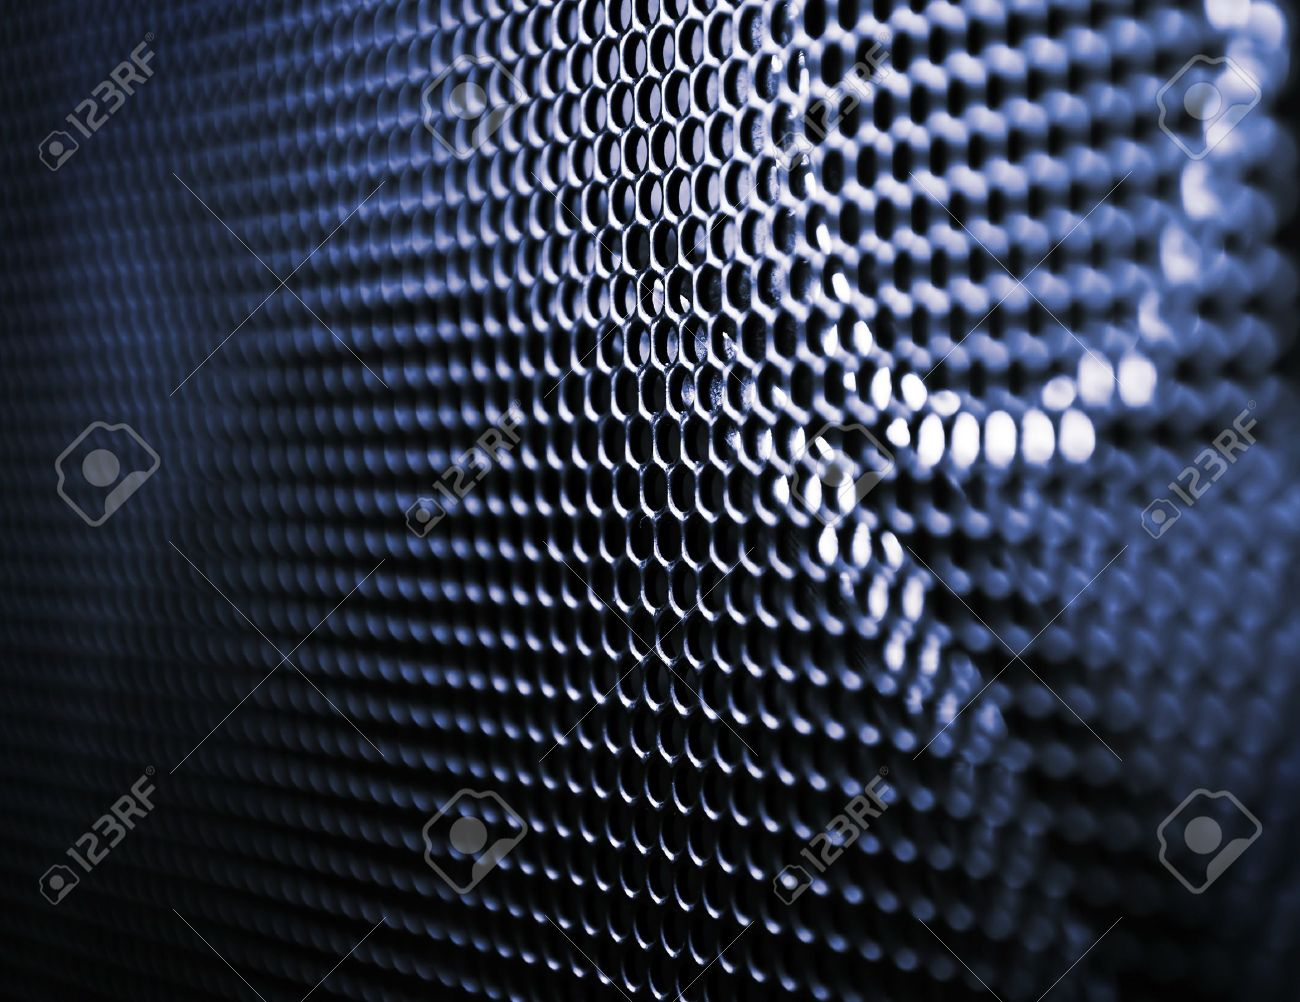 Close up grunge speaker grill, backgrounds, blue metal texture Stock Photo - 9881734